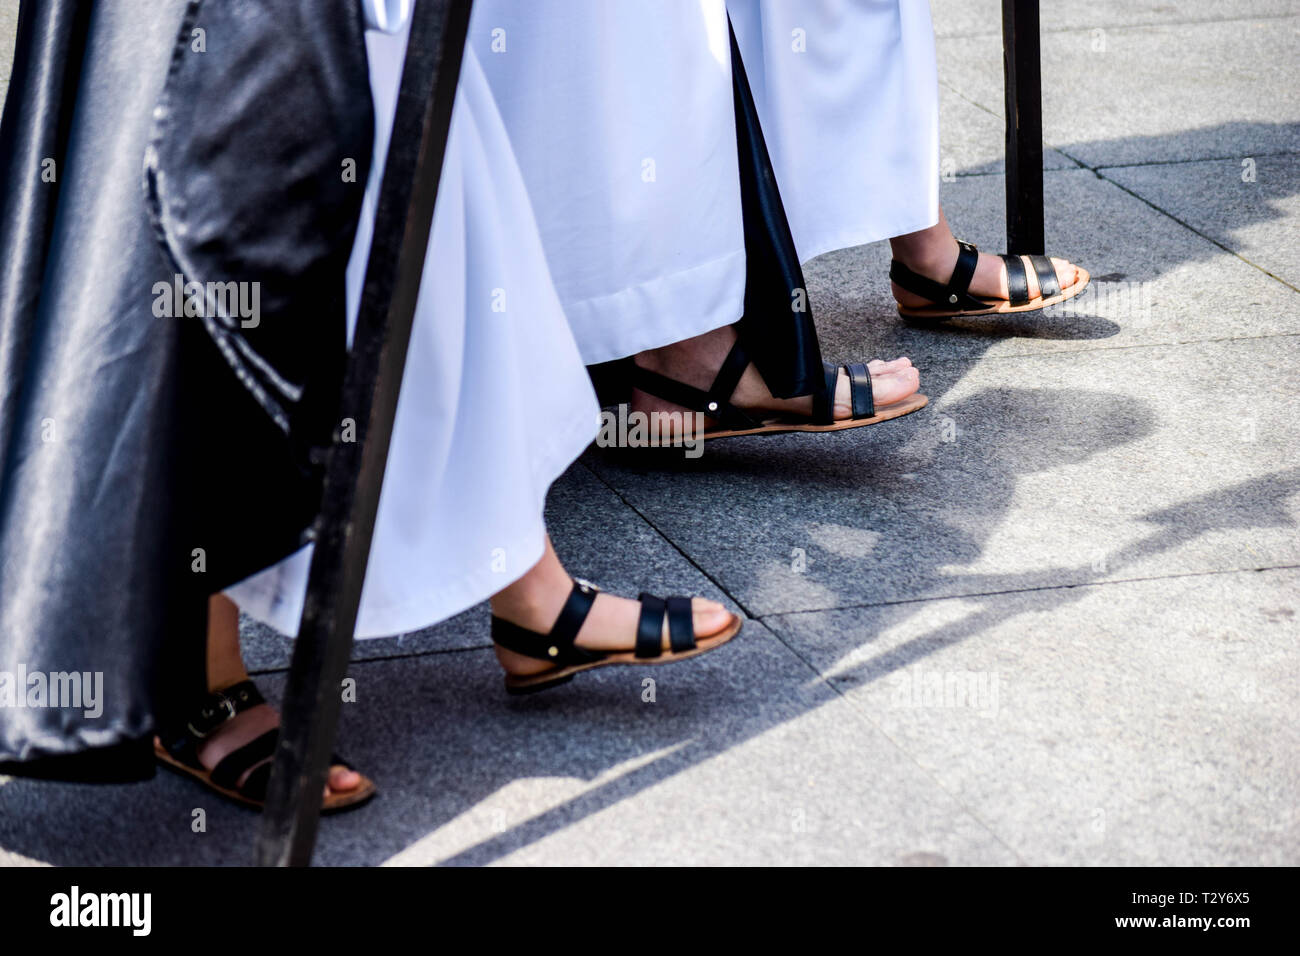 Penitents walking toguether on Holy Week in Spain - Stock Image